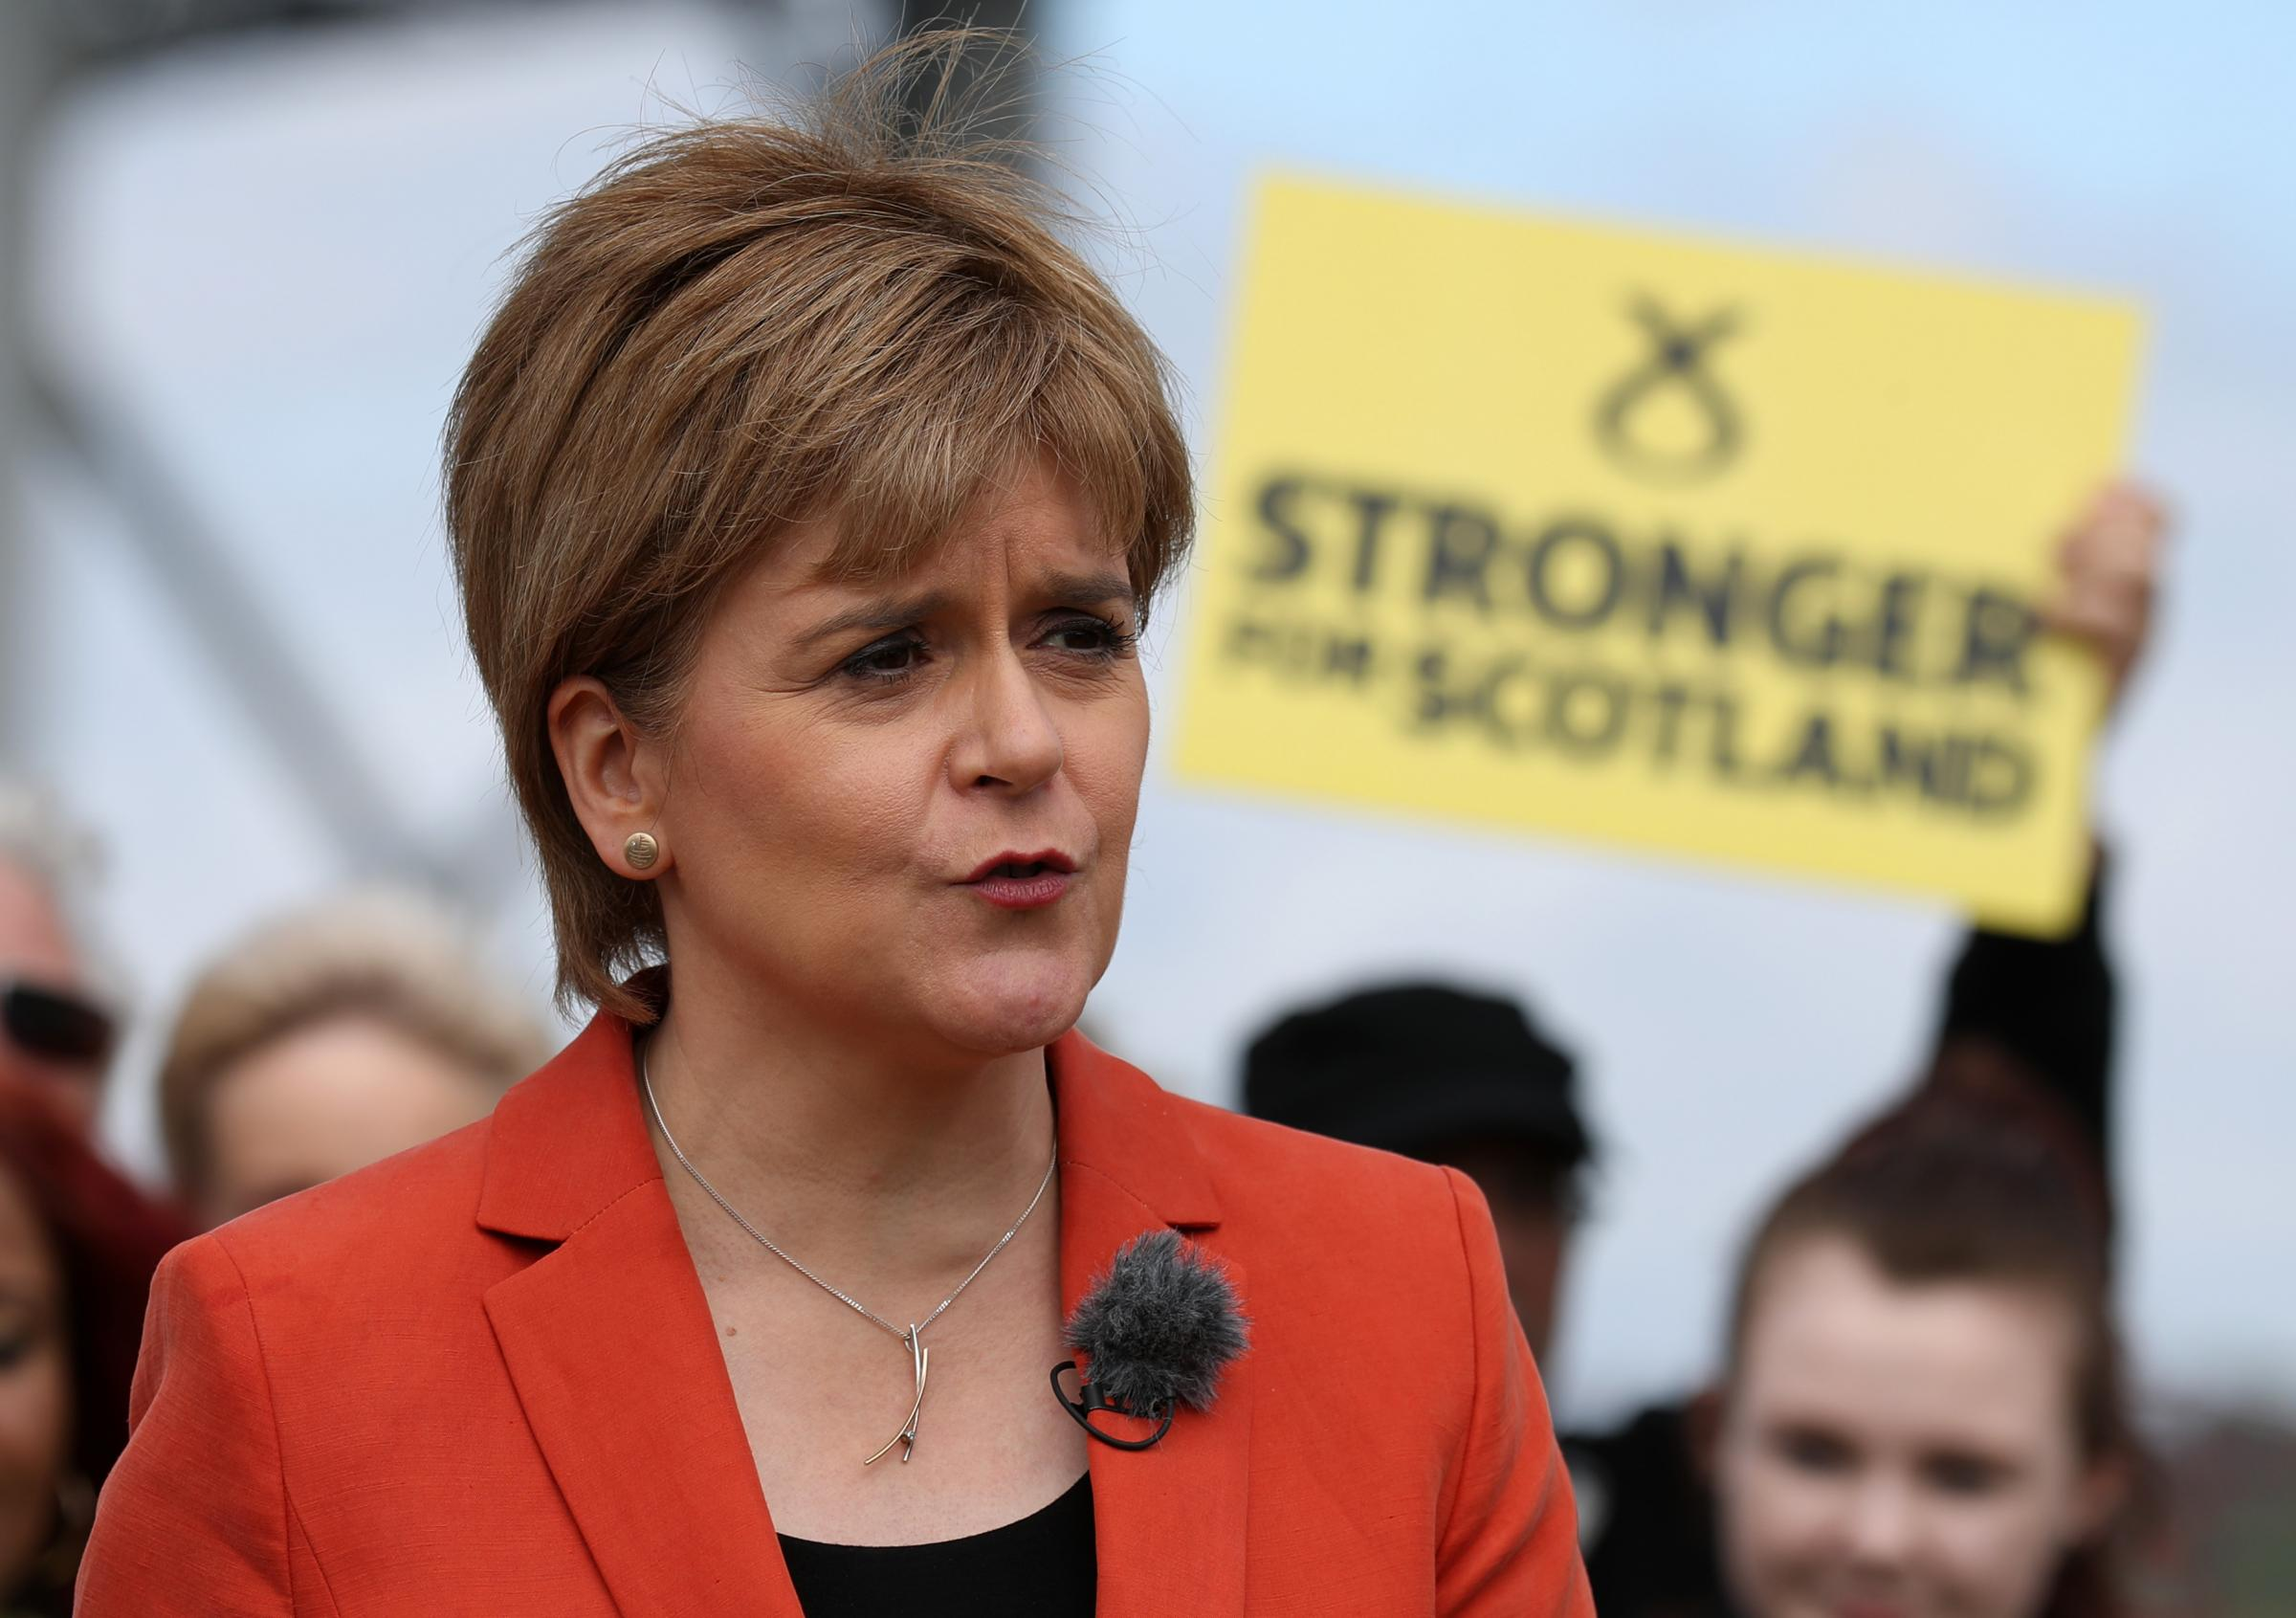 Nicola Sturgeon: Independence will bear no resemblance to Brexit 'mess'